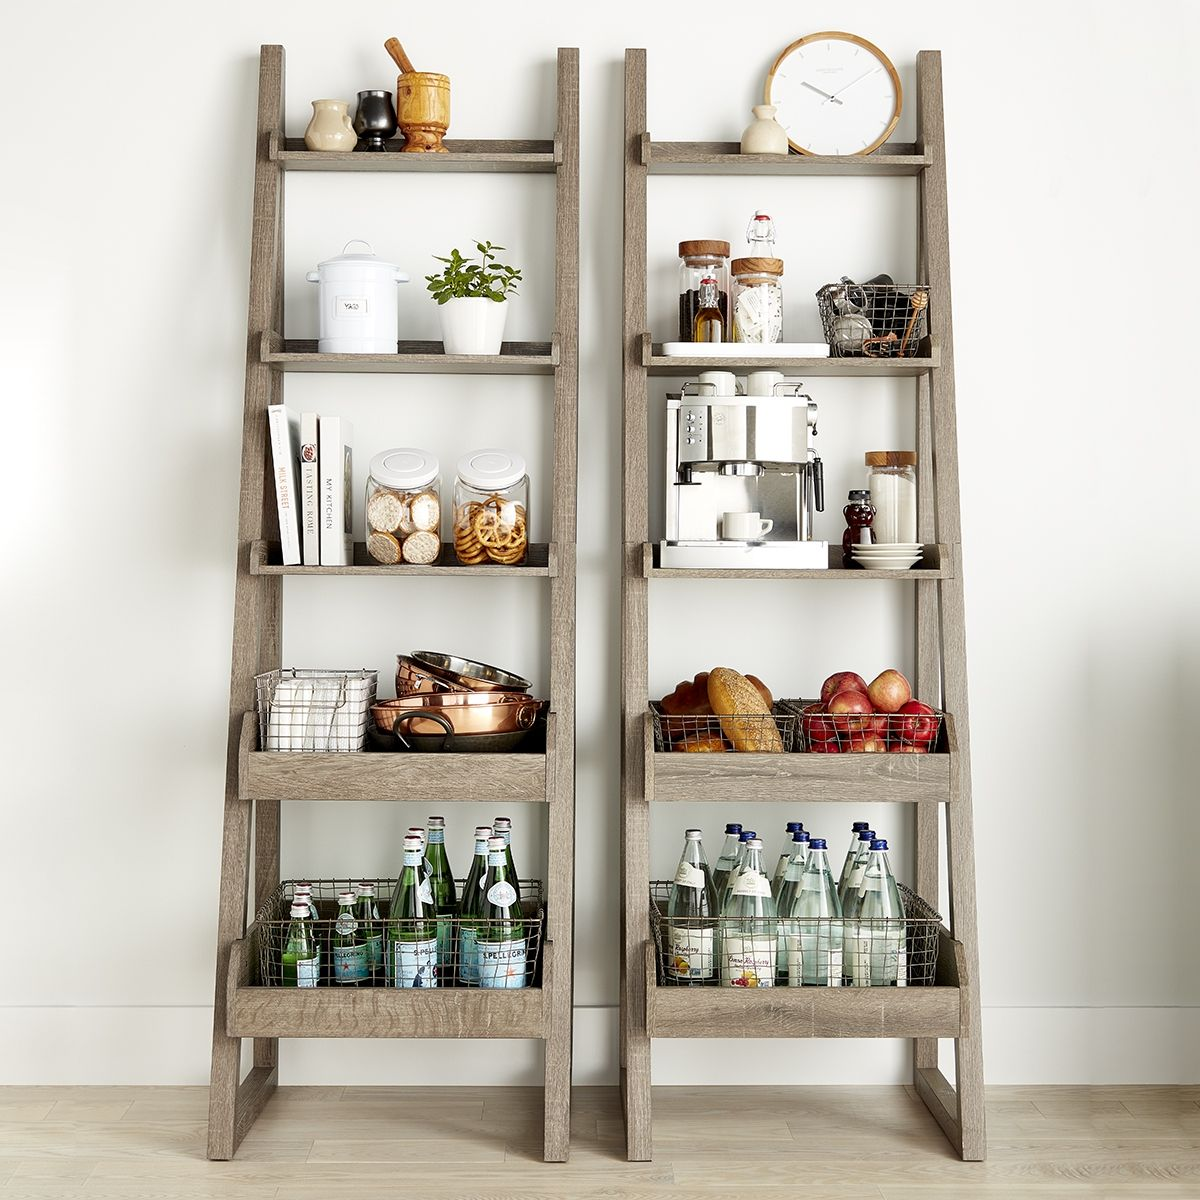 Make Use Of Vertical Space Bookshelves And Free Standing Shelving